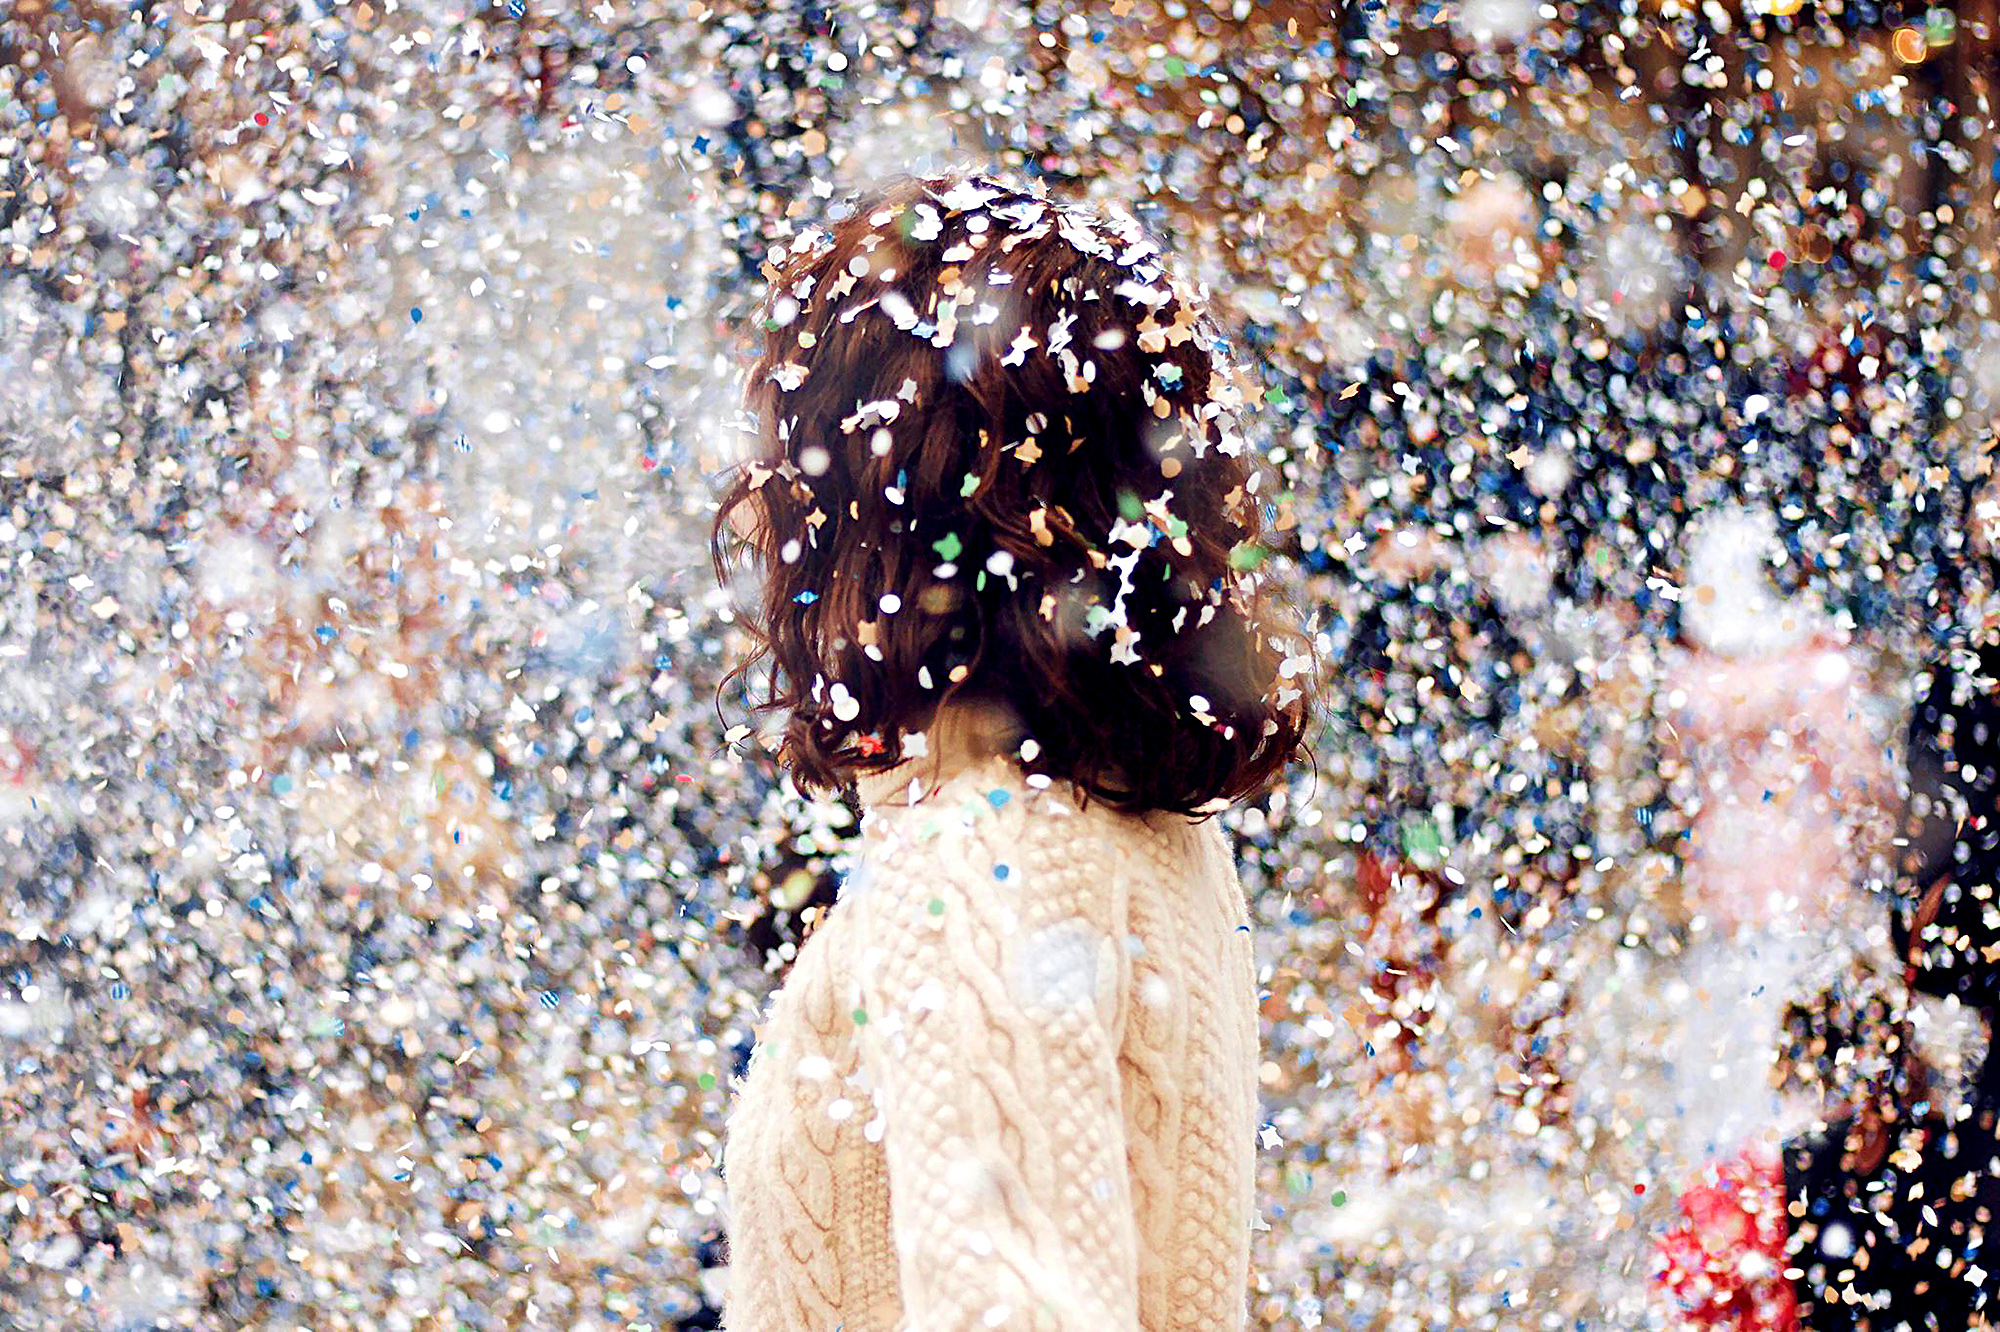 Female figure surrounded by confetti